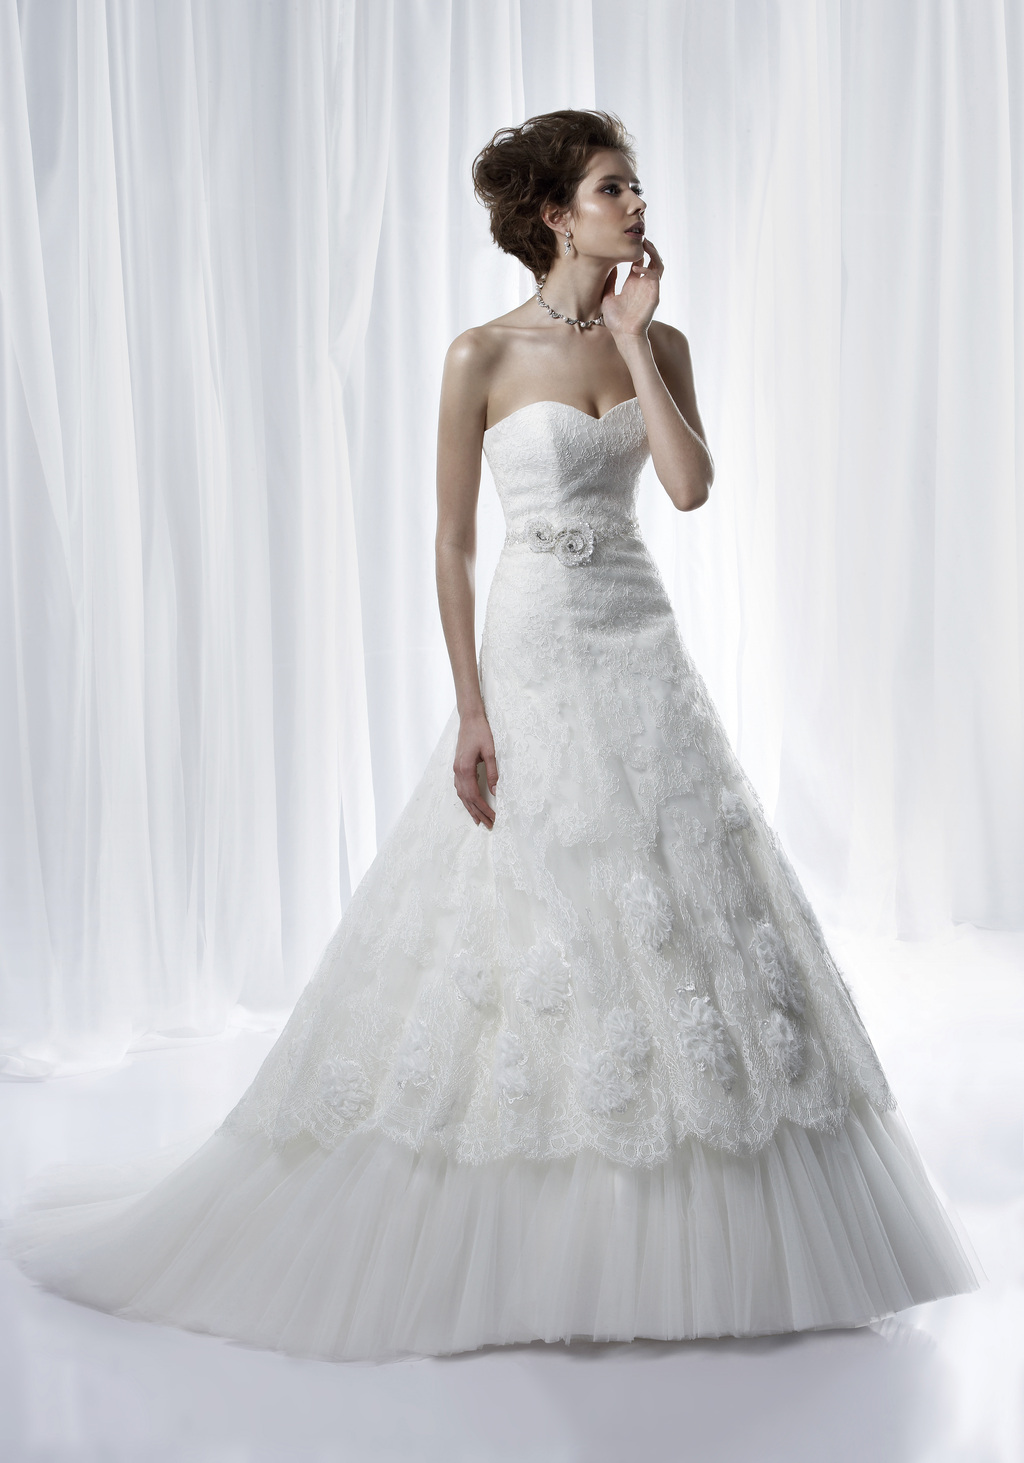 Classic a-line sweetheart wedding dress in lace with tulle petticoat and eye-catching beading embell